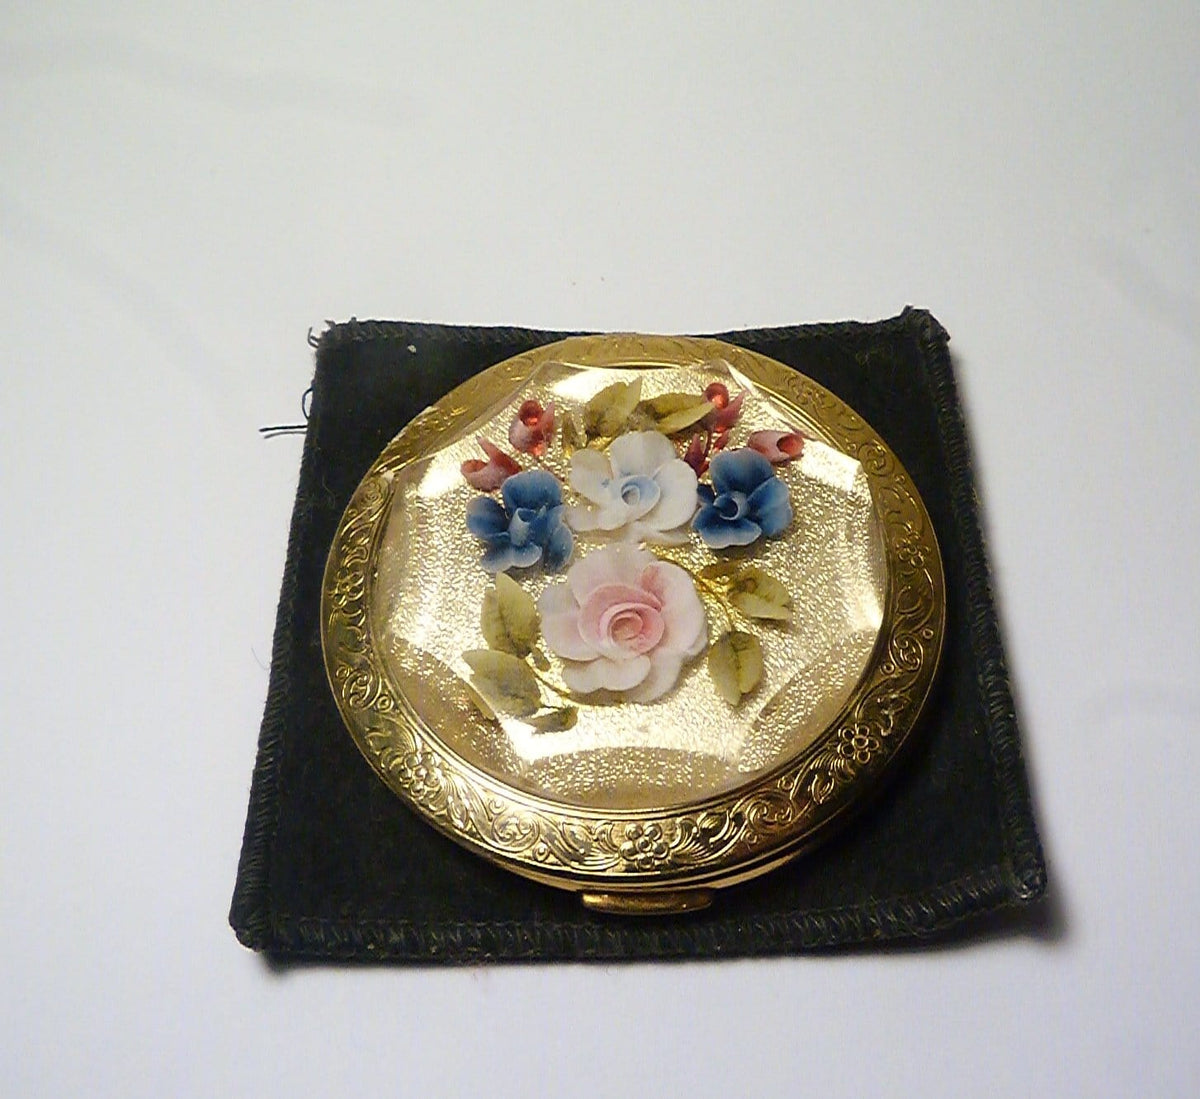 where do I find vintage powder compacts for sale